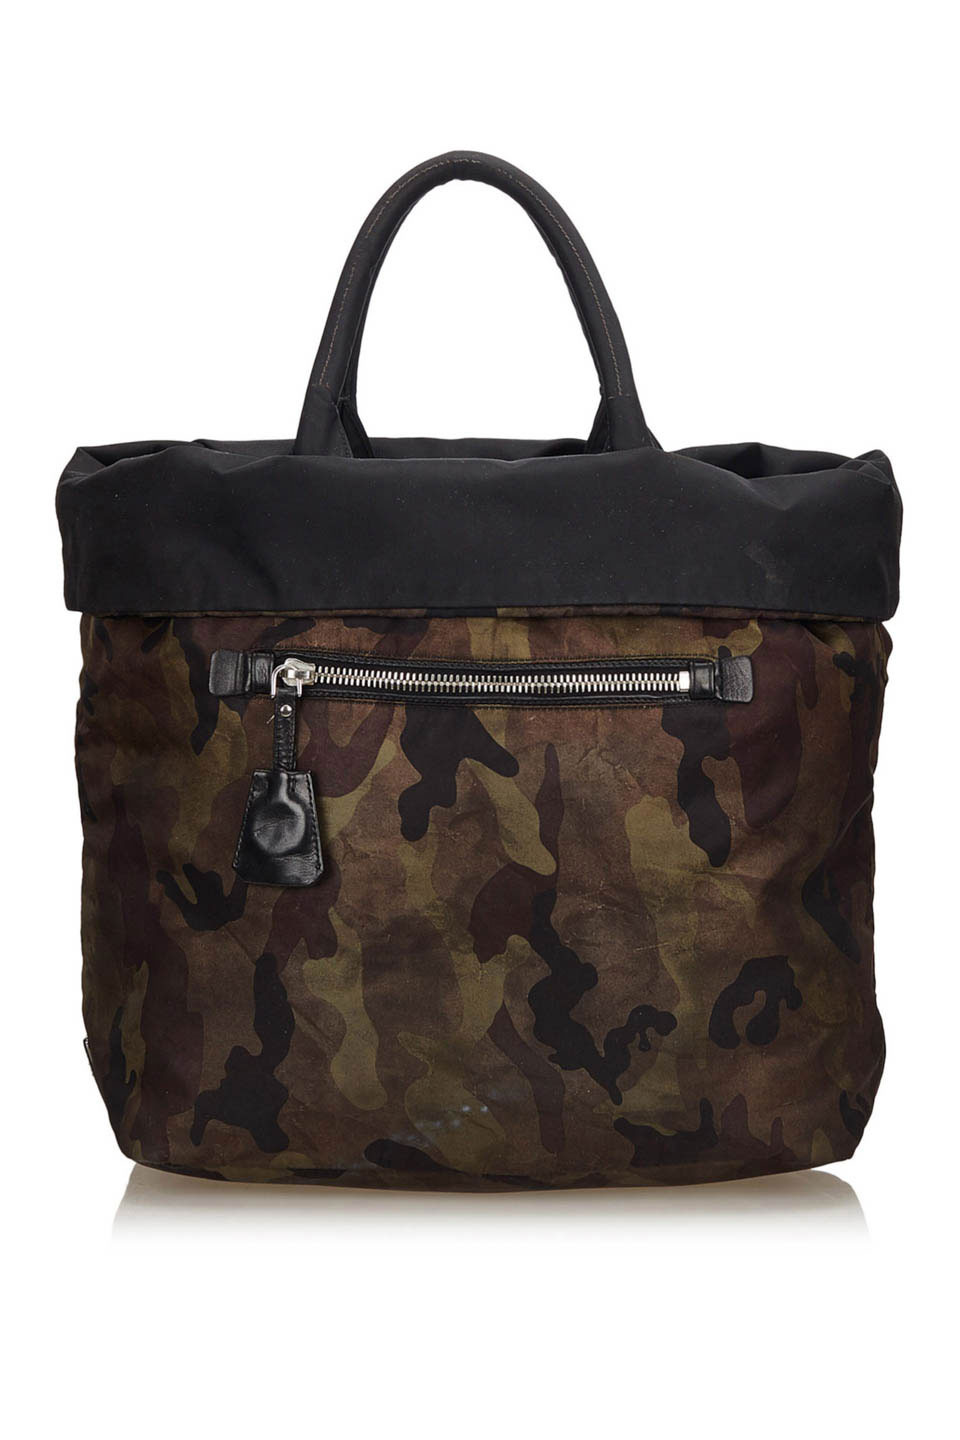 Prada Reversible Camouflage Tote in Brown, Khaki and Multi